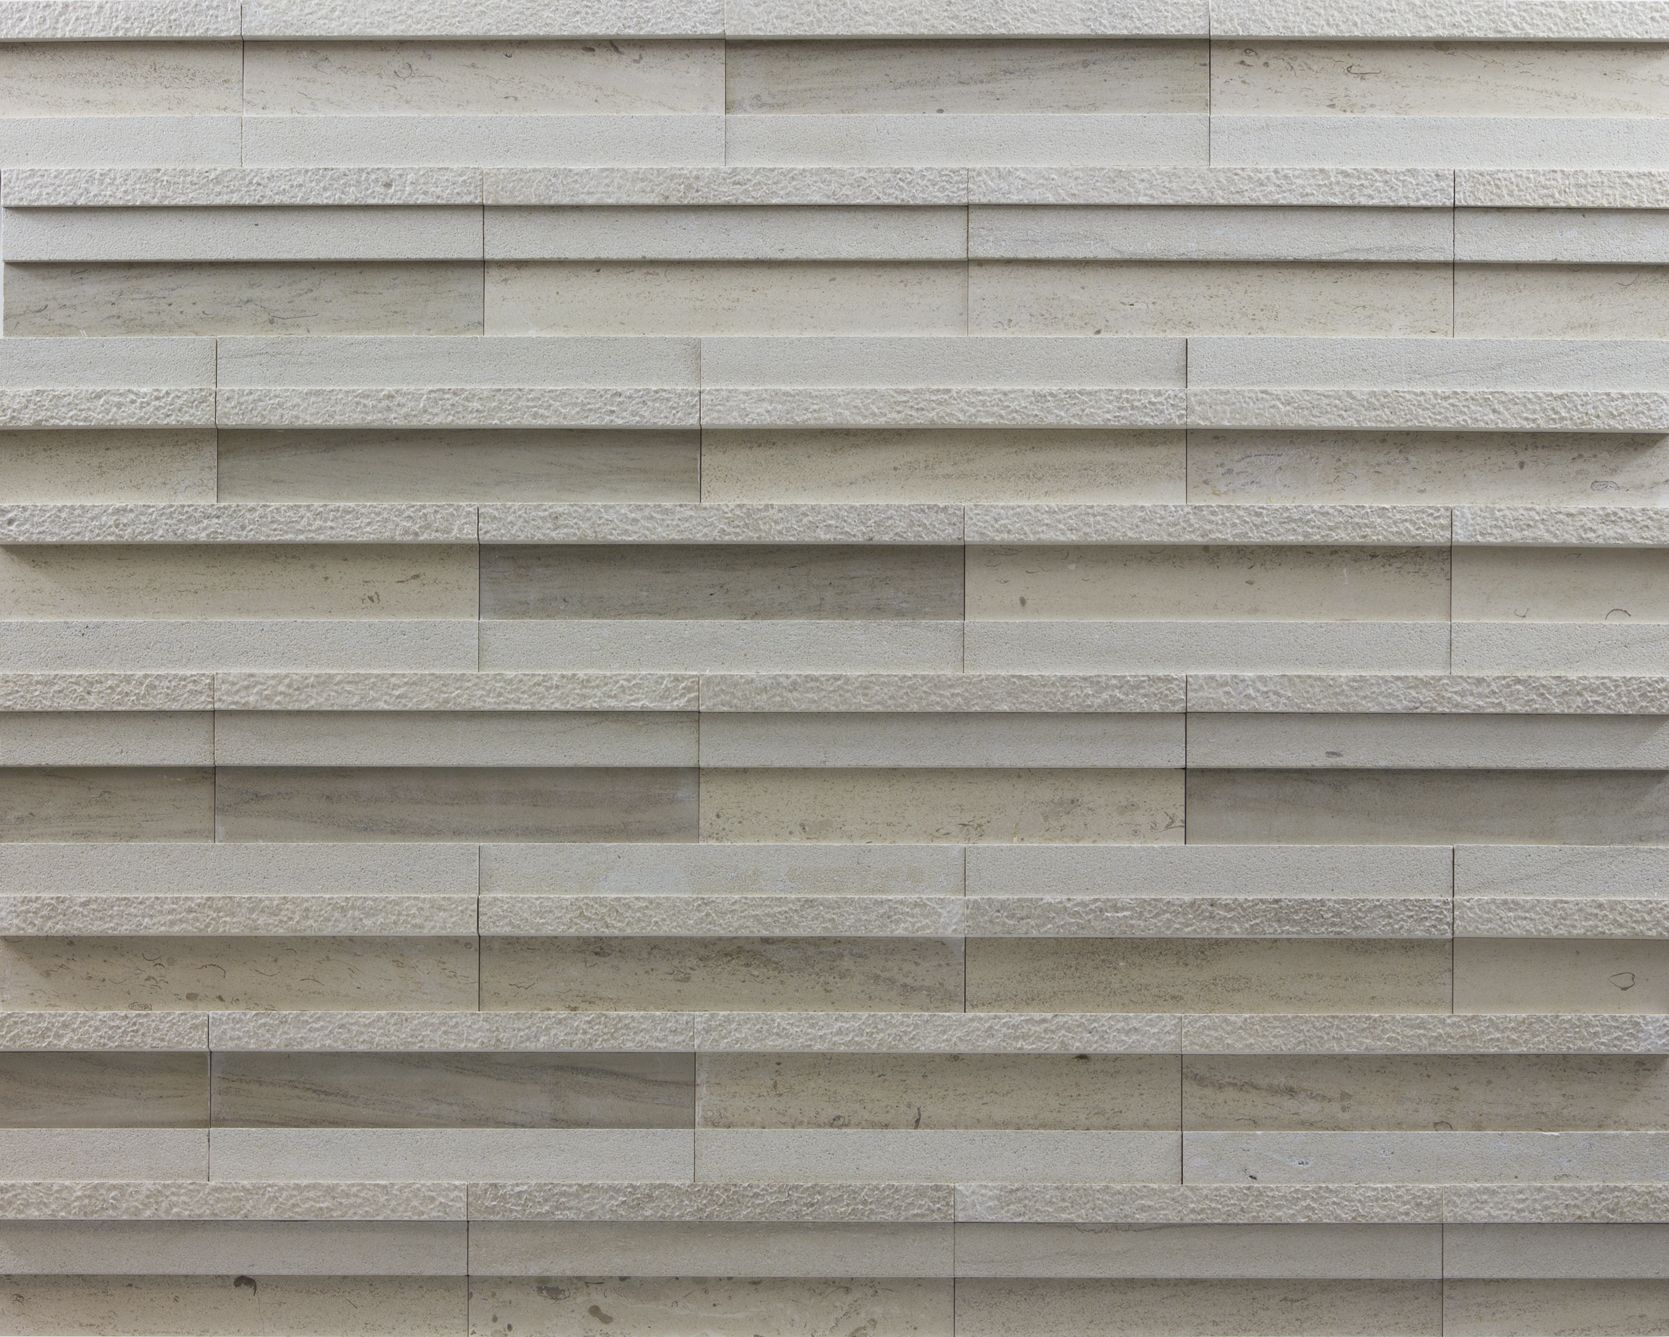 Areia Portugal Tile From Realstone Systems Staggered Horizontal Pattern Backsplash Fireplace Home D Stone Cladding Texture Stone Veneer Thin Stone Veneer